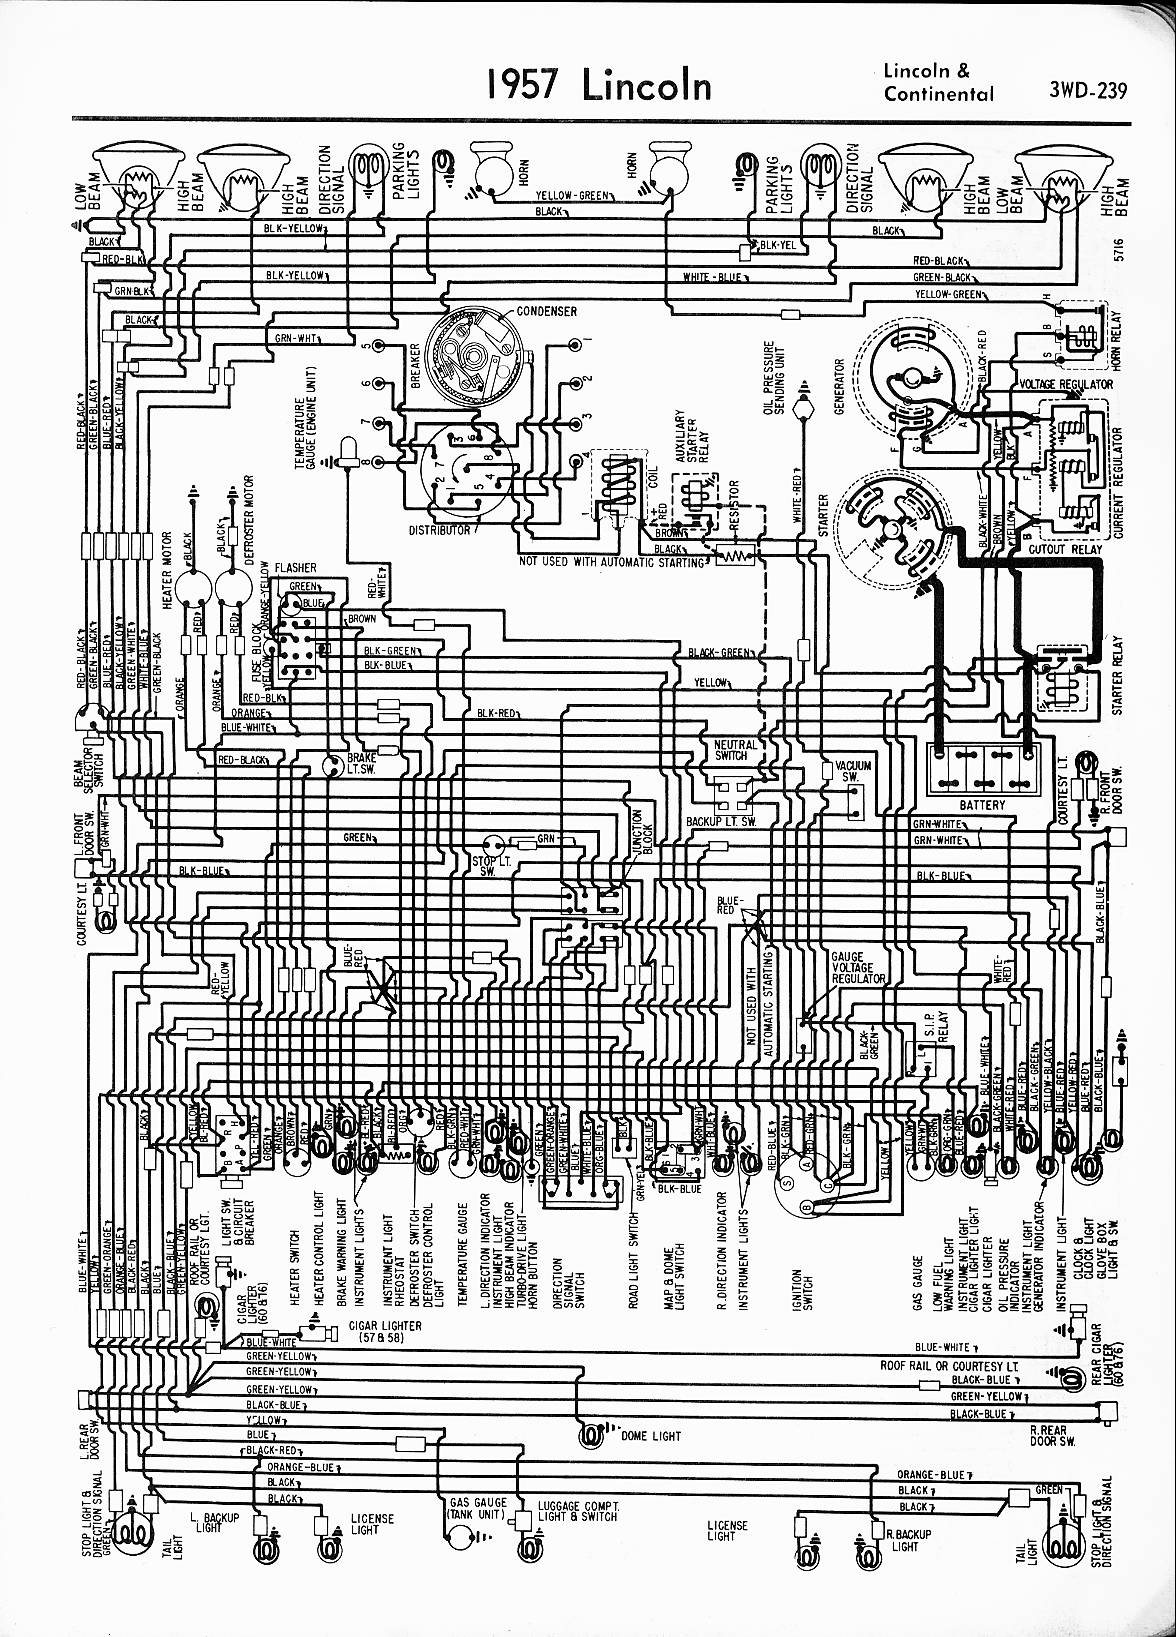 1968 lincoln continental wiring diagram 66 lincoln continental wiring diagram lincoln wiring diagrams: 1957 - 1965